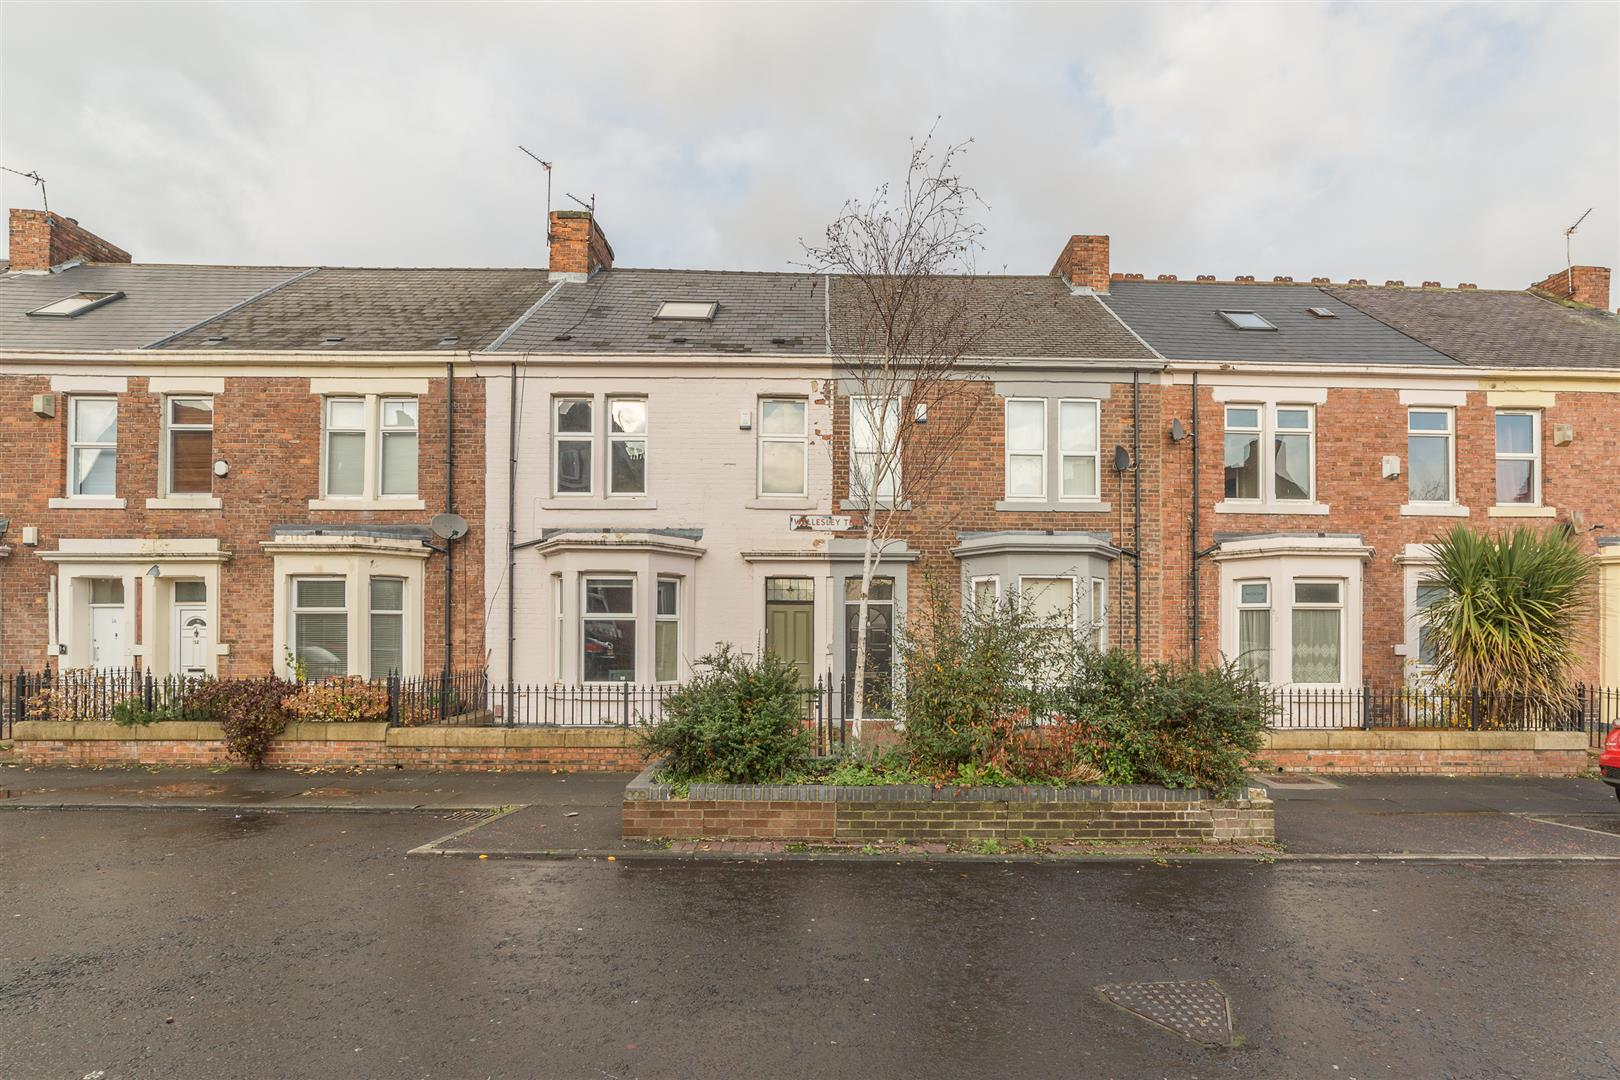 5 bed terraced house to rent in Newcastle Upon Tyne, NE4 5NL 25